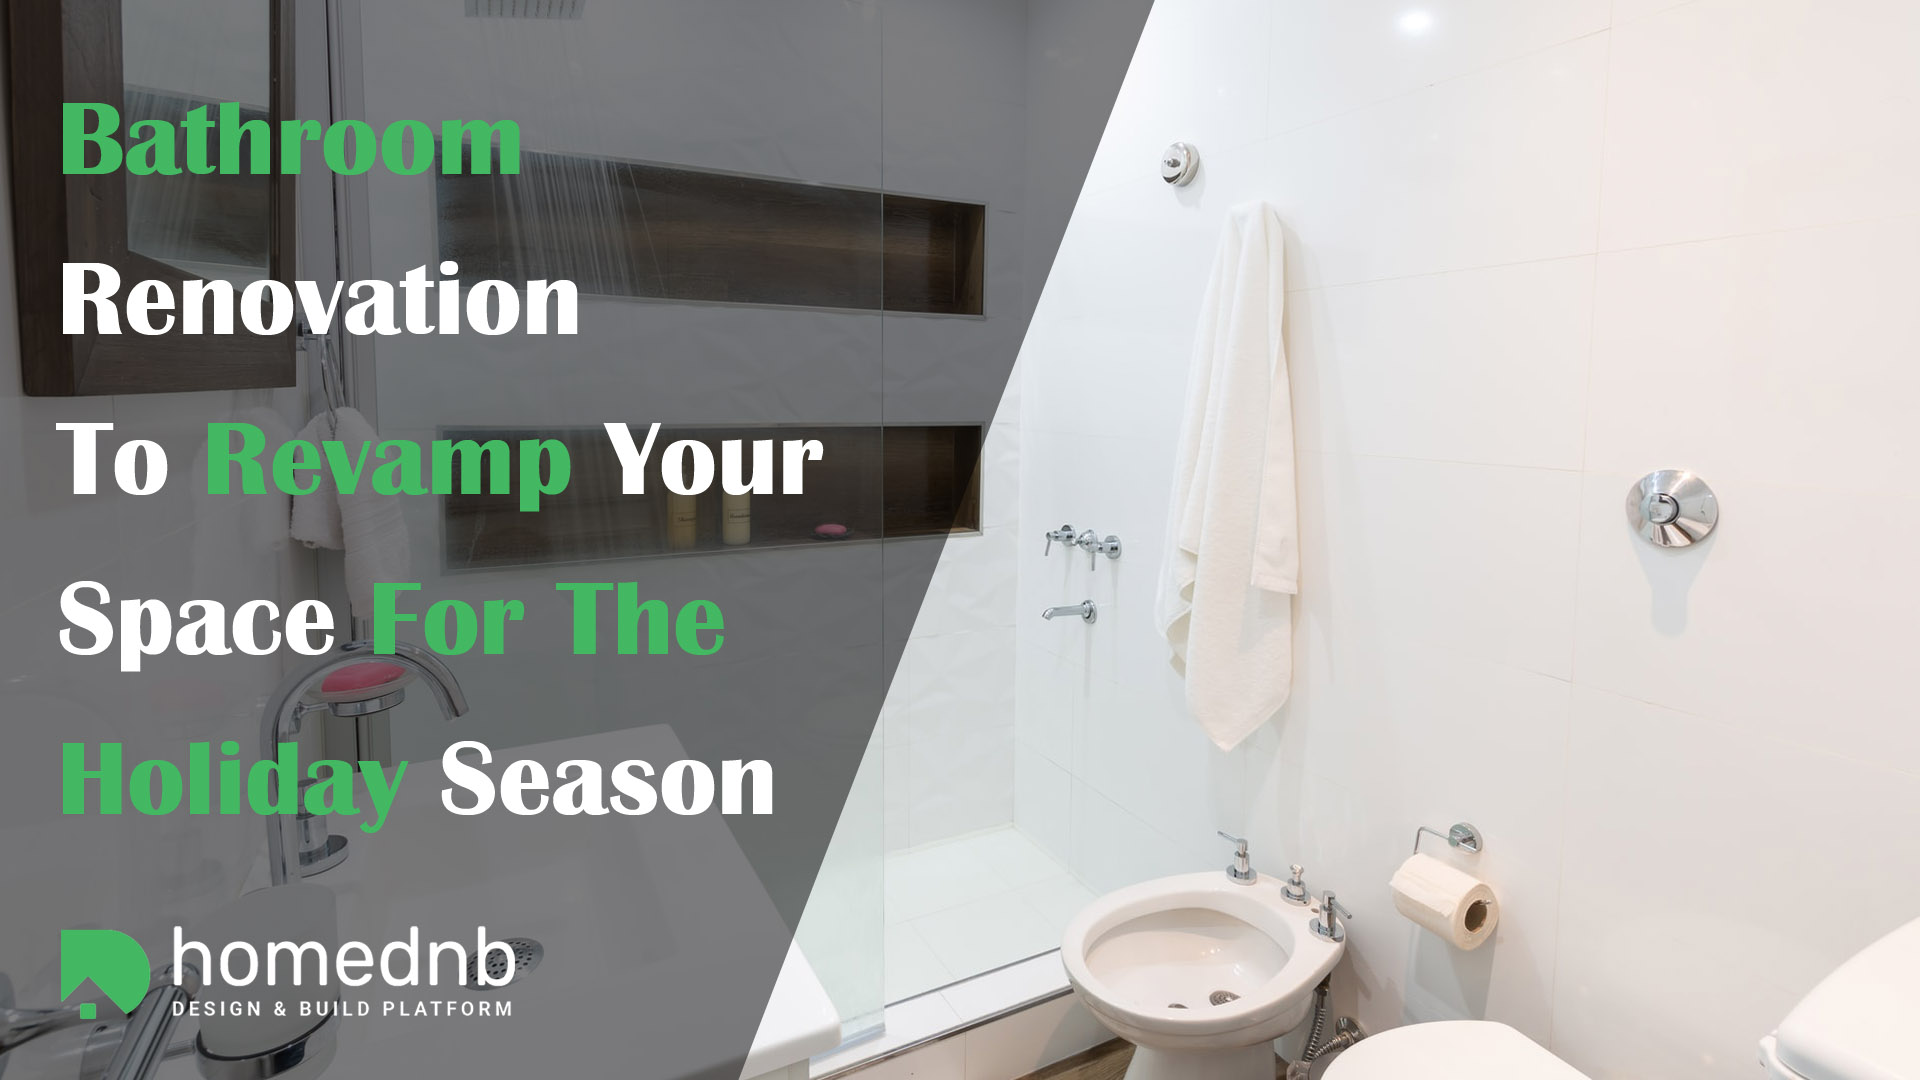 Bathroom Renovation To Revamp Your Space For The Holiday Season